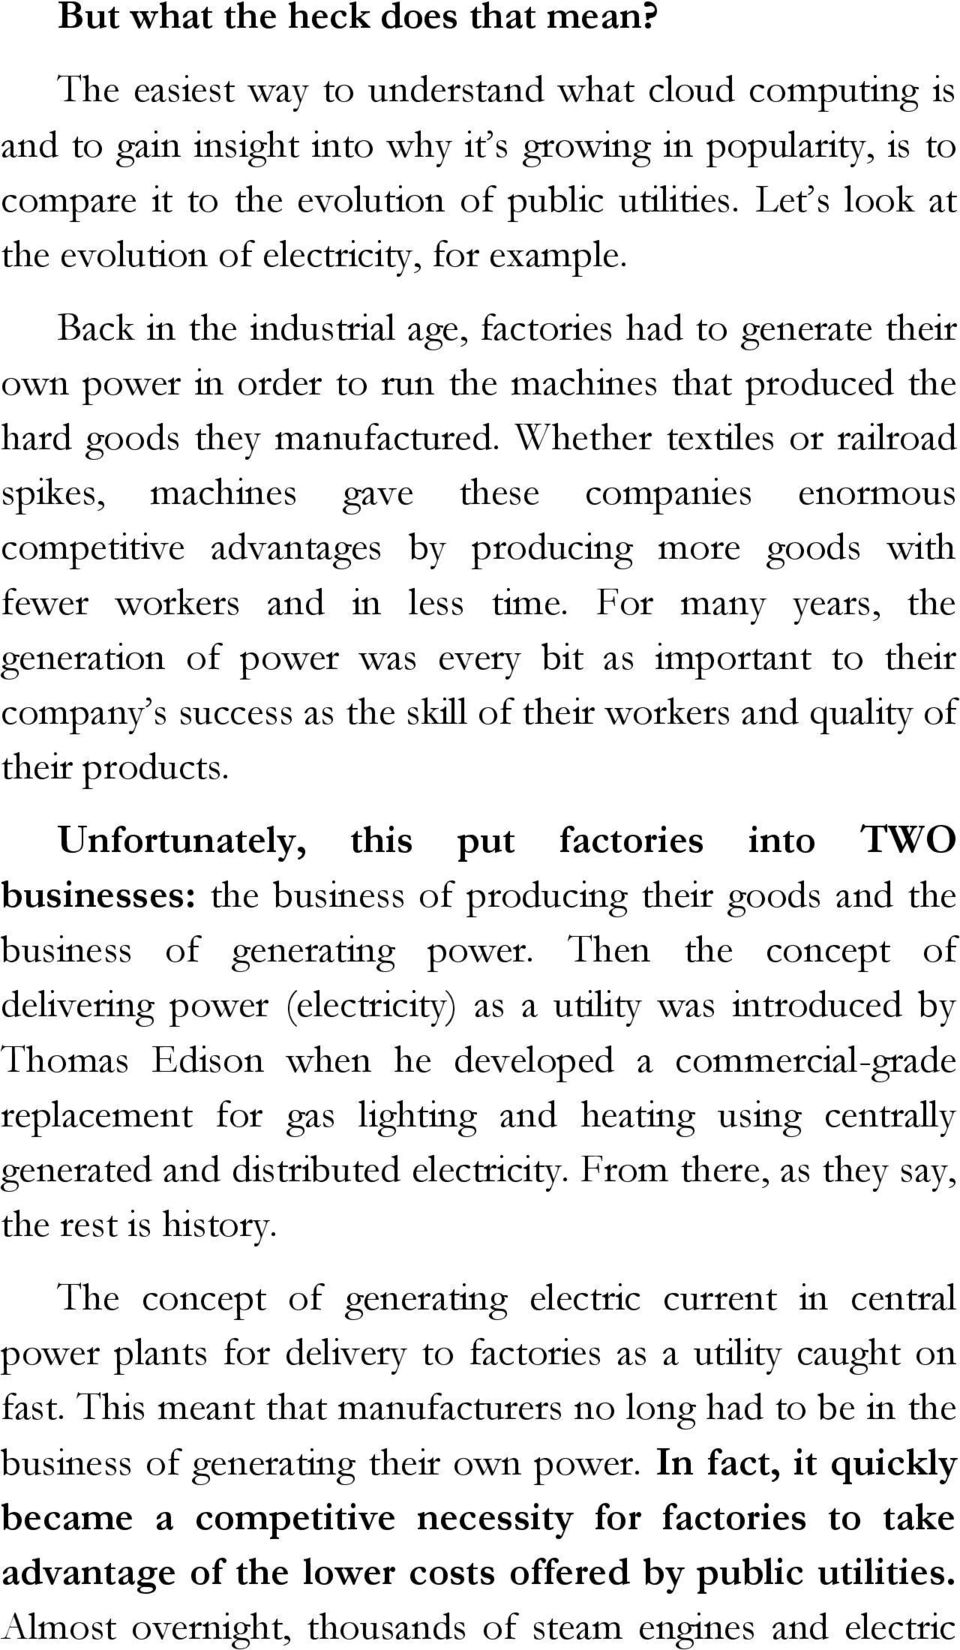 Back in the industrial age, factories had to generate their own power in order to run the machines that produced the hard goods they manufactured.